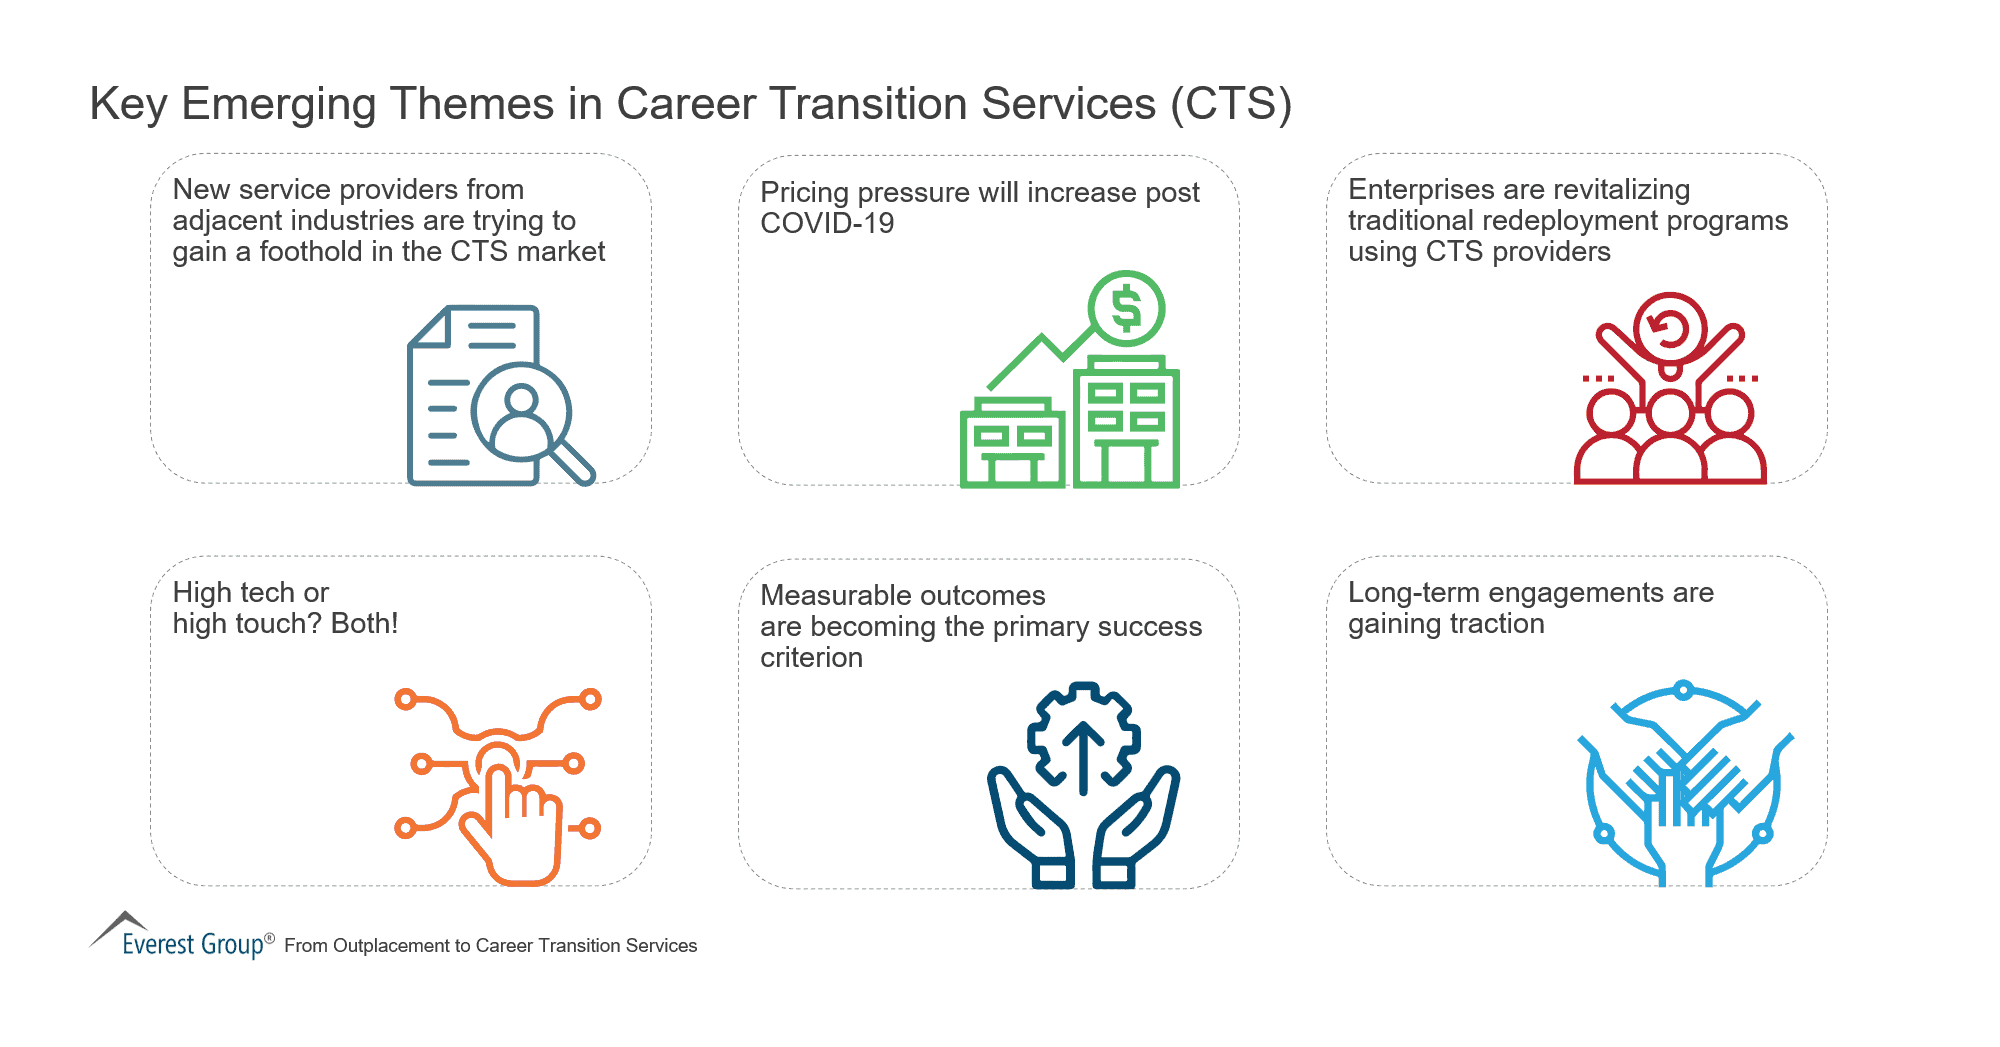 Key Emerging Themes in Career Transition Services